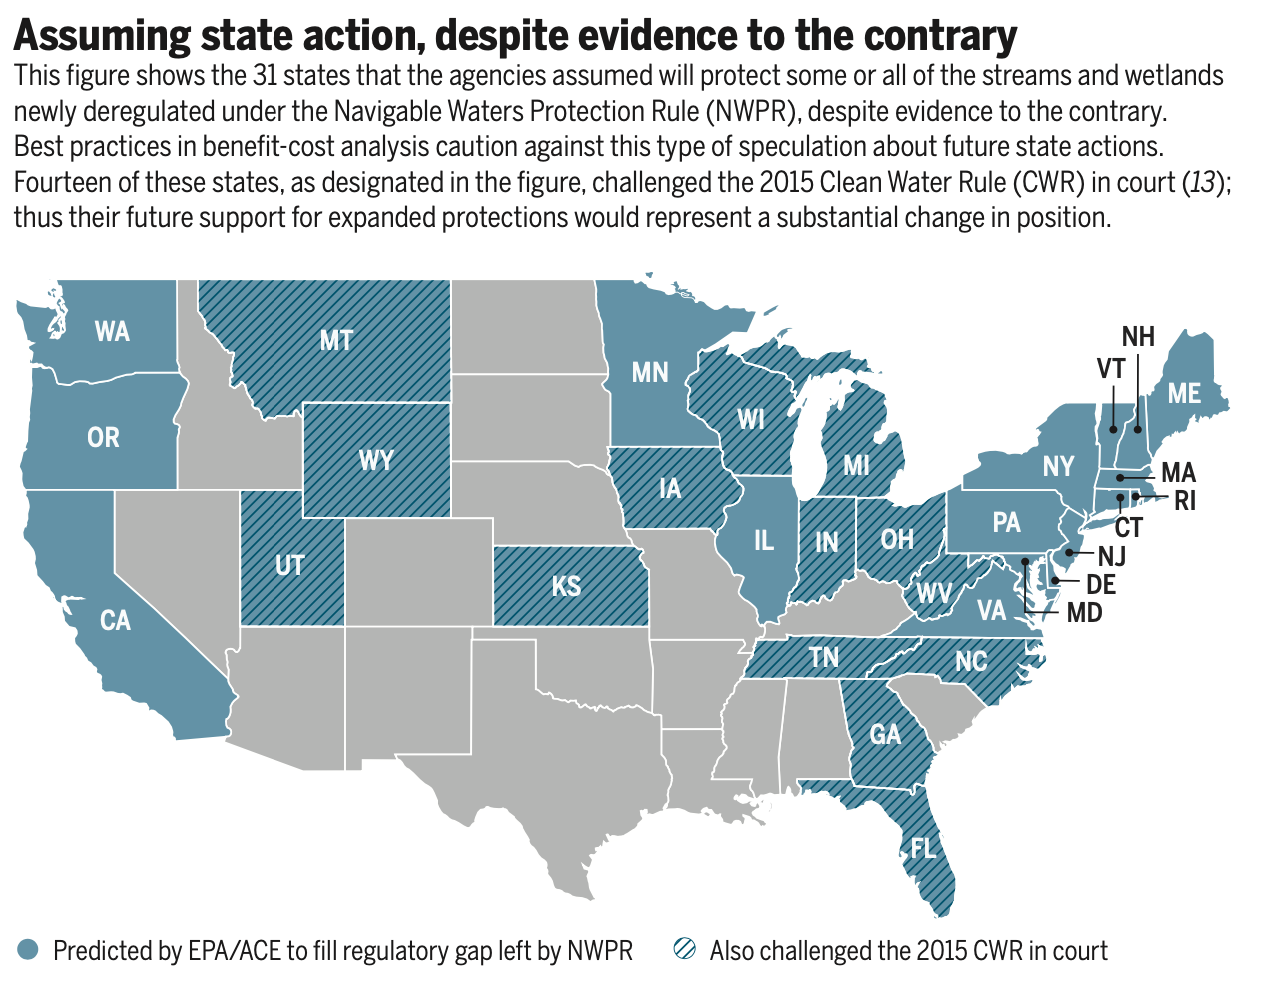 State action graphic from SCIENCE. Reprinted with permission from AAAS